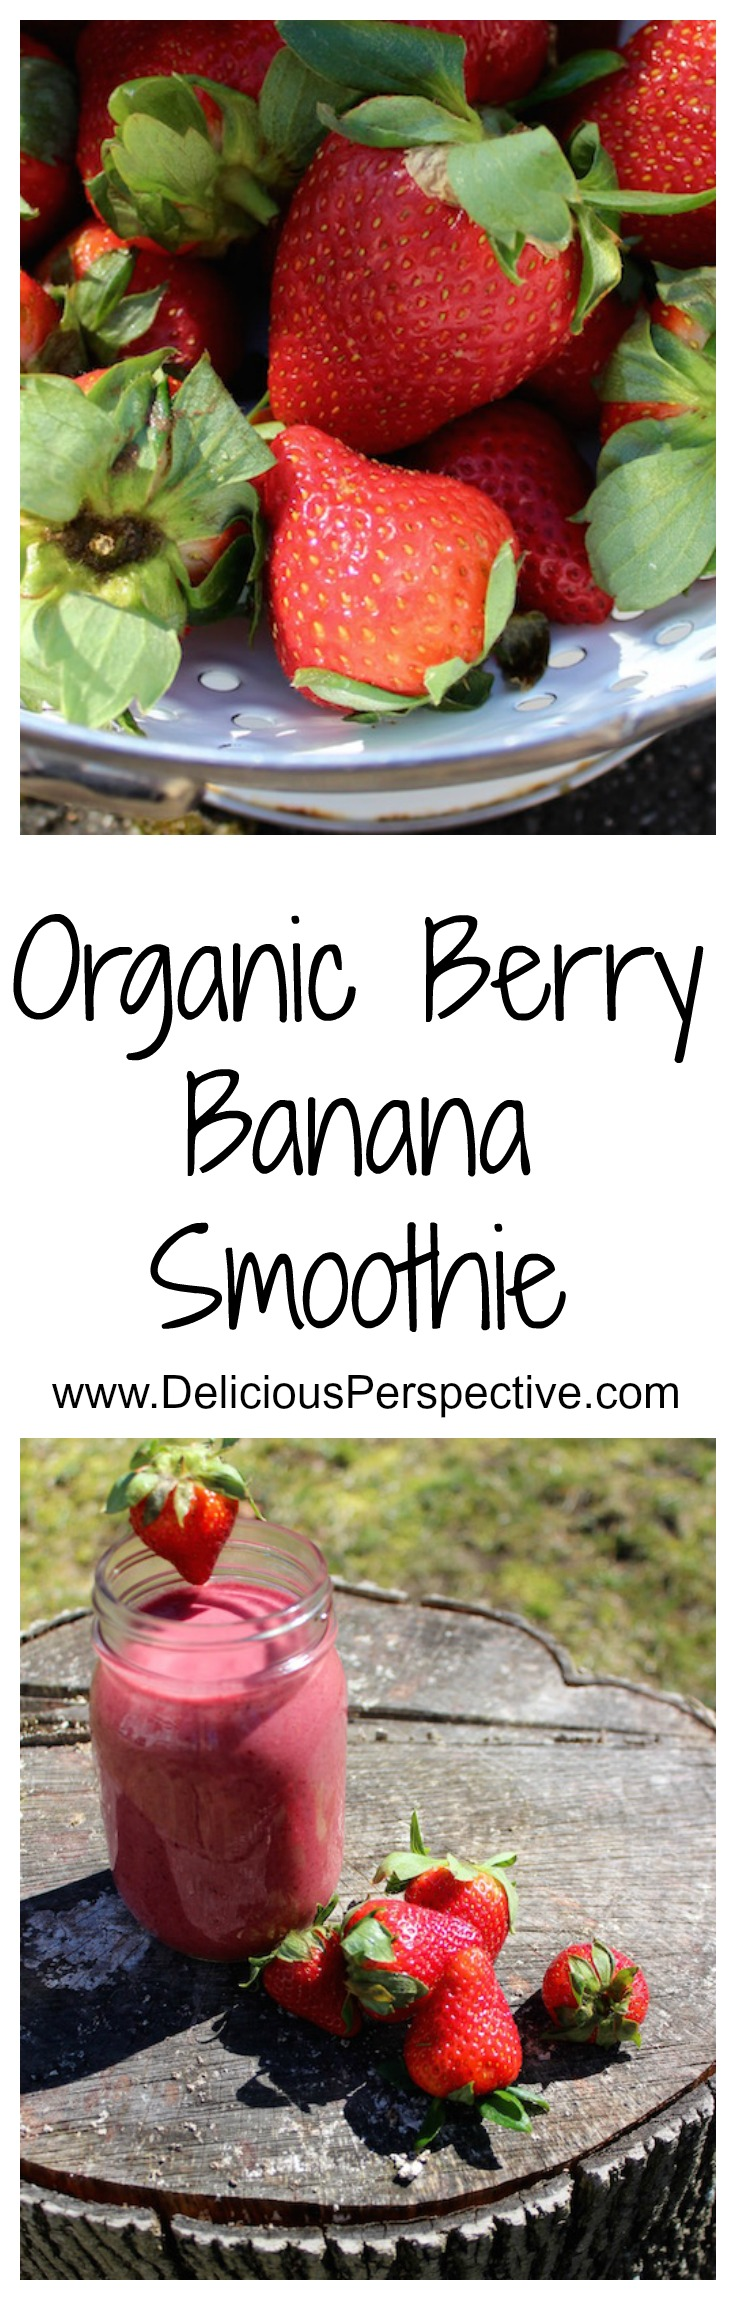 Organic Berry Banana Smoothie || DeliciousPerspective.com